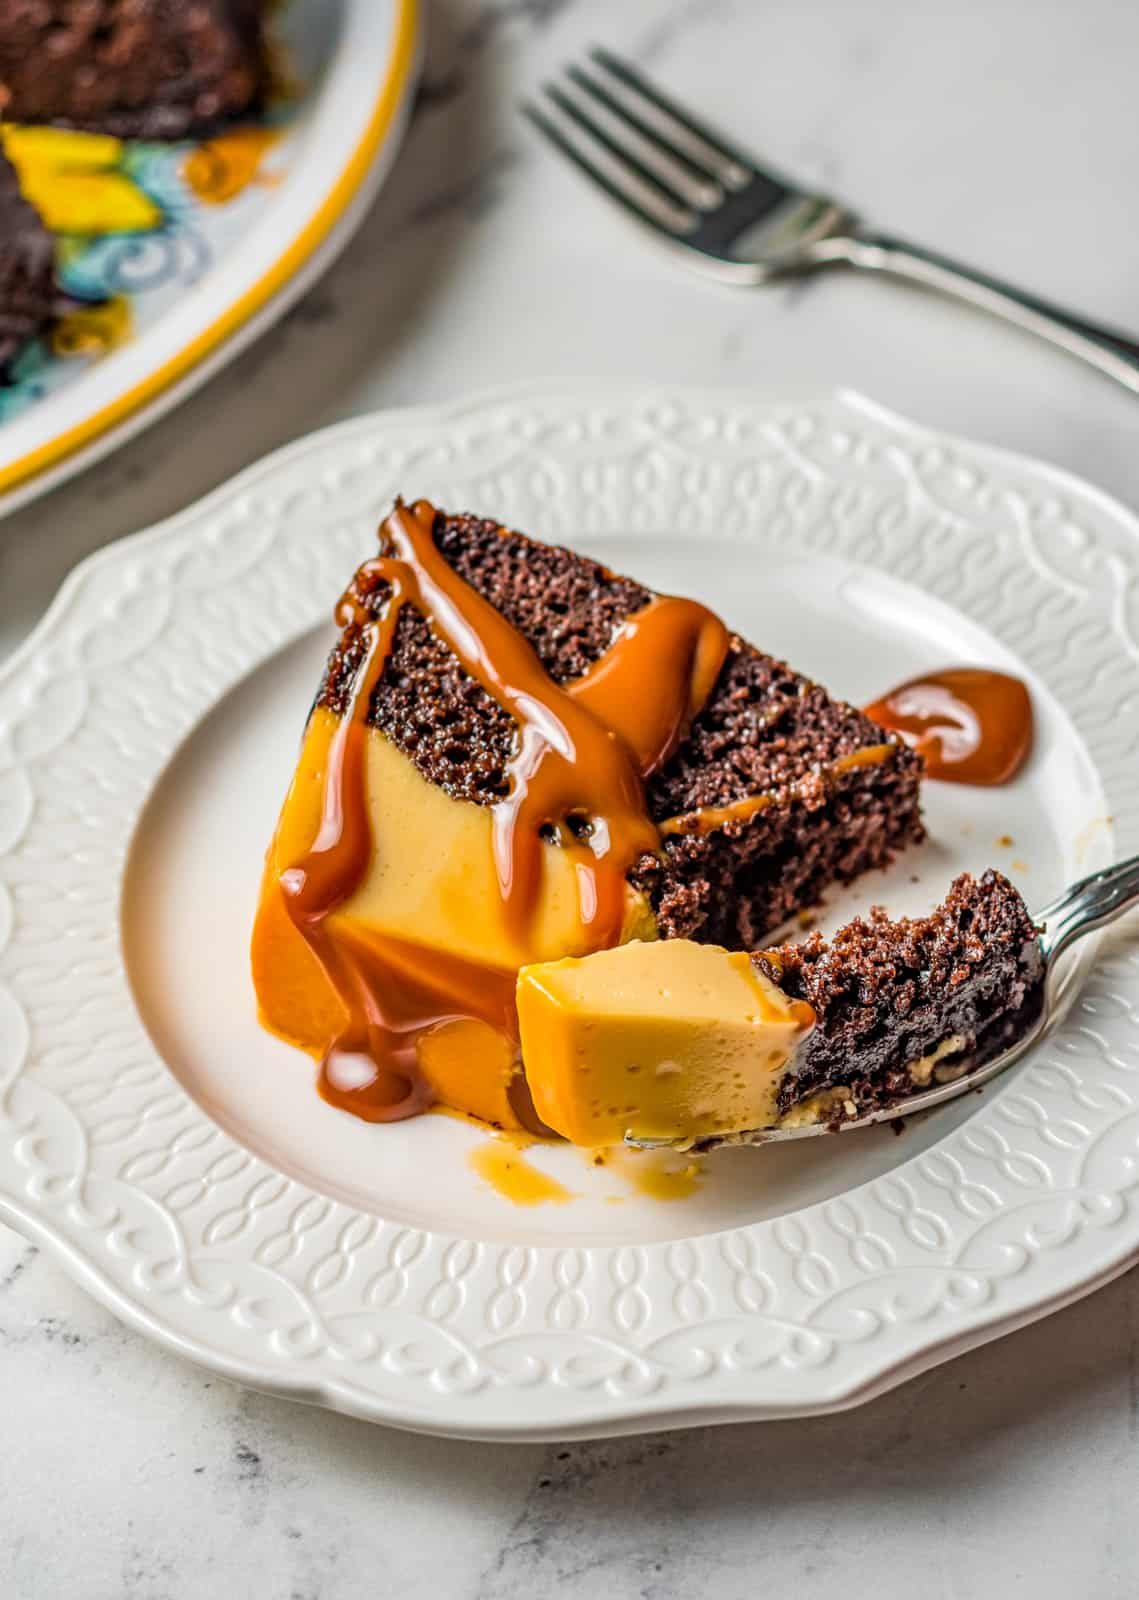 Slice of Chocoflan on white plate with dulce de leech with fork holding a bite